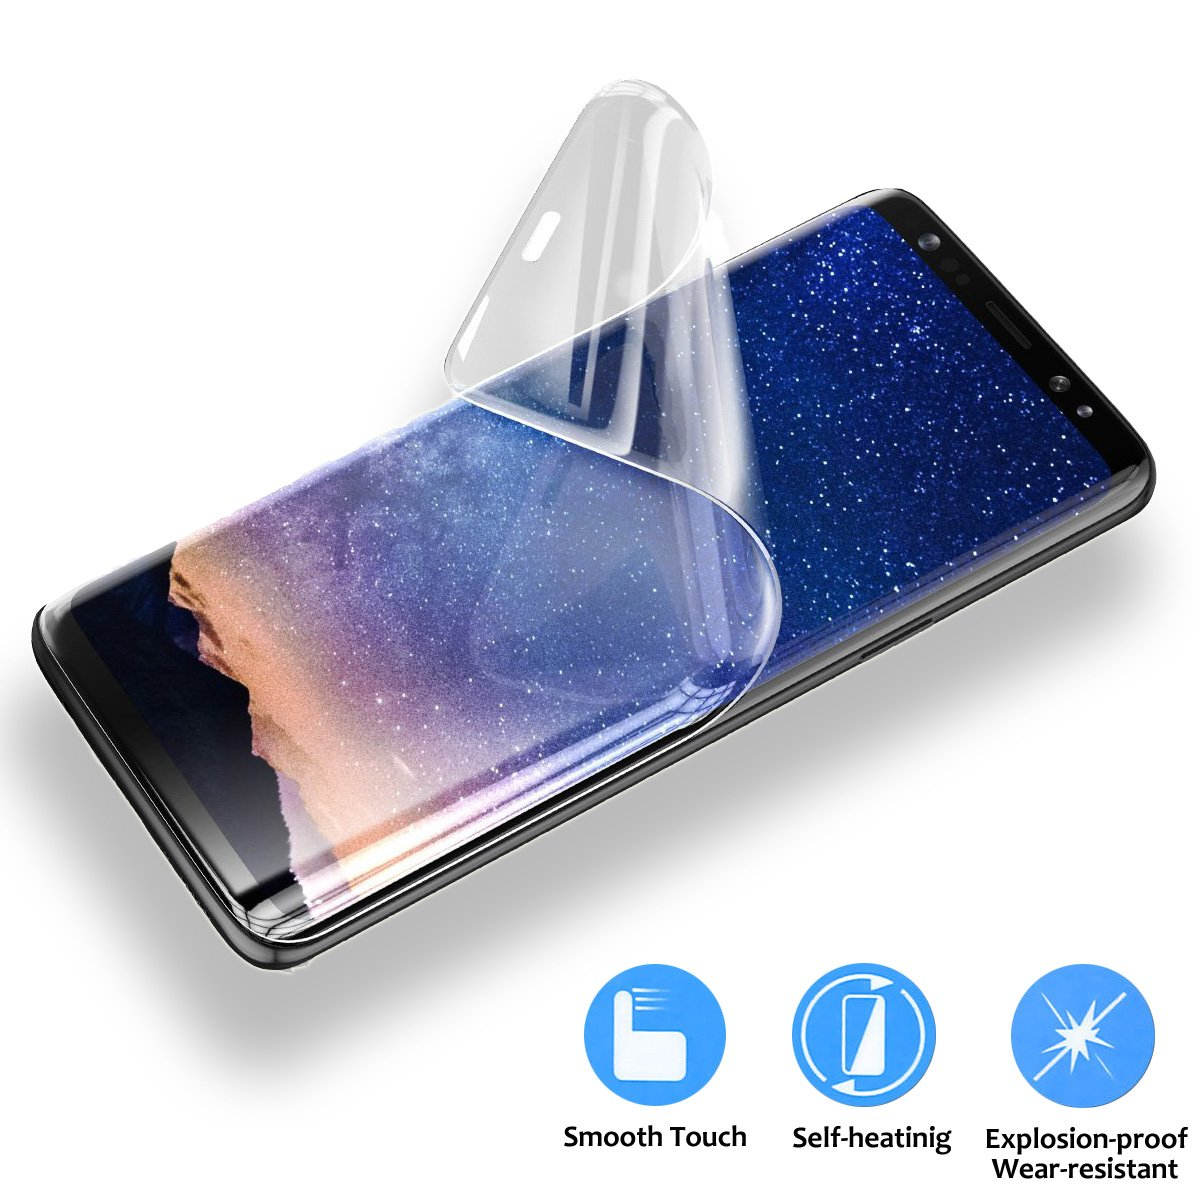 Samsung Galaxy Note 8 HYDROGEL 0 18mm Thin FLEX Screen Protector Curved  Soft TPU Film NO NEED Wet Applied Full Cover Screen Guard for Samsung  Galaxy